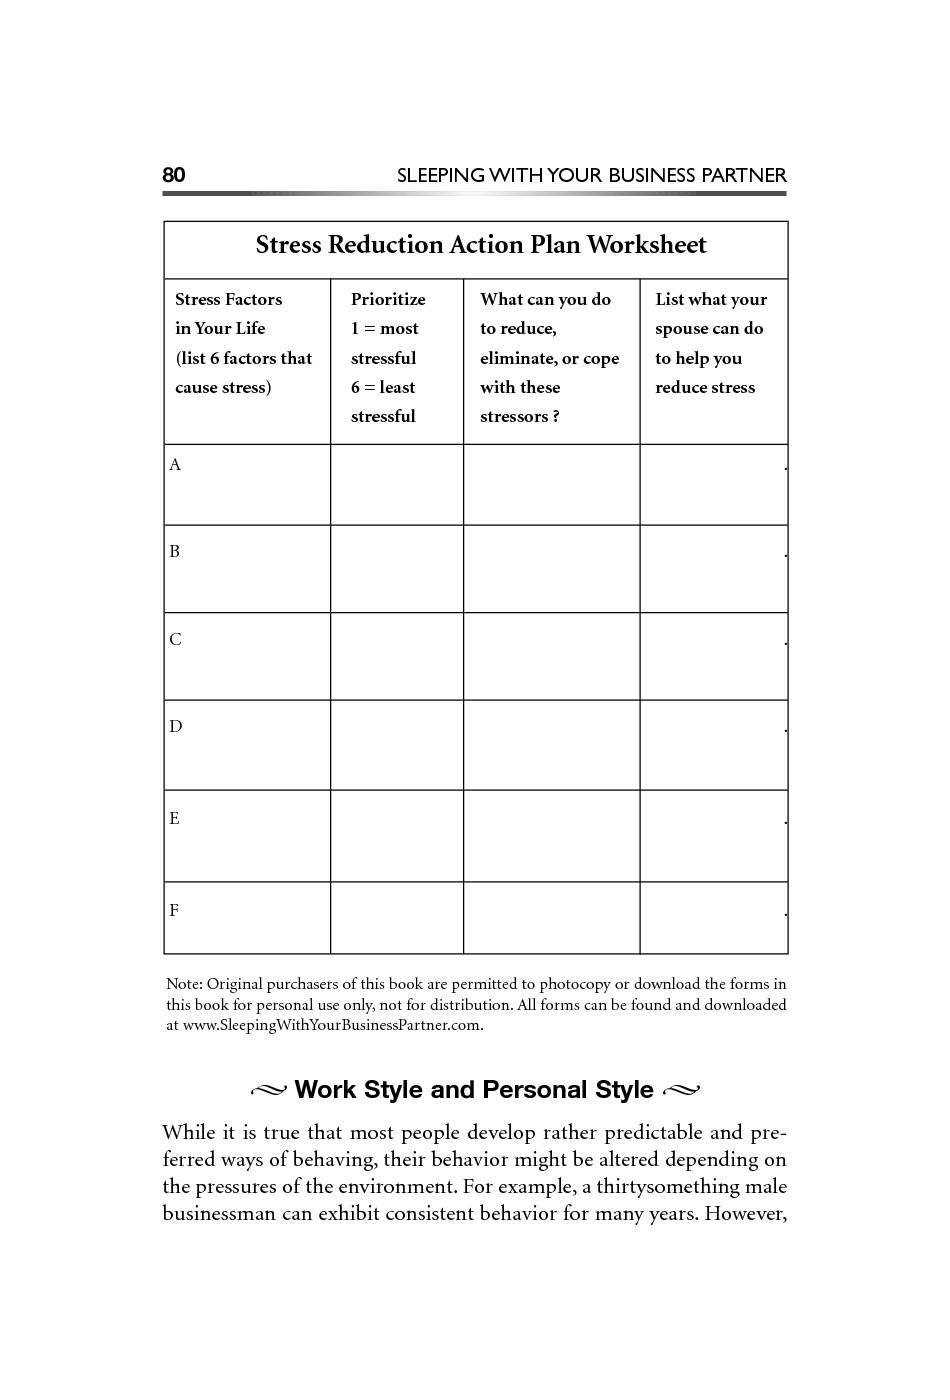 worksheet Change Plan Worksheet coping with stress worksheets bing images pinterest images